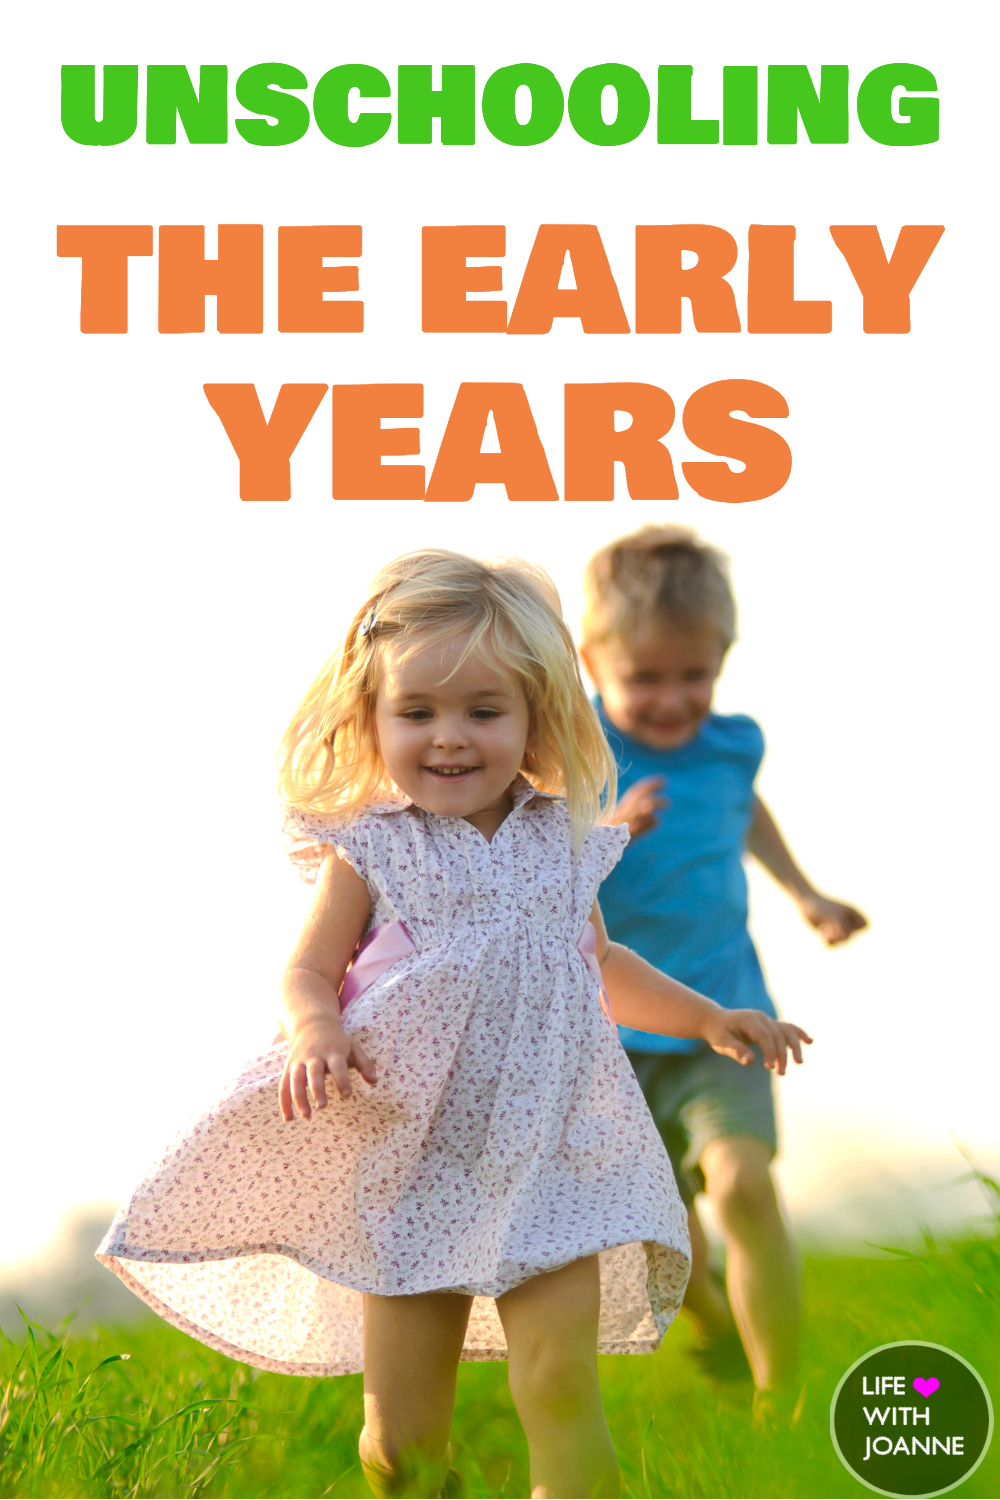 Unschooling the early years